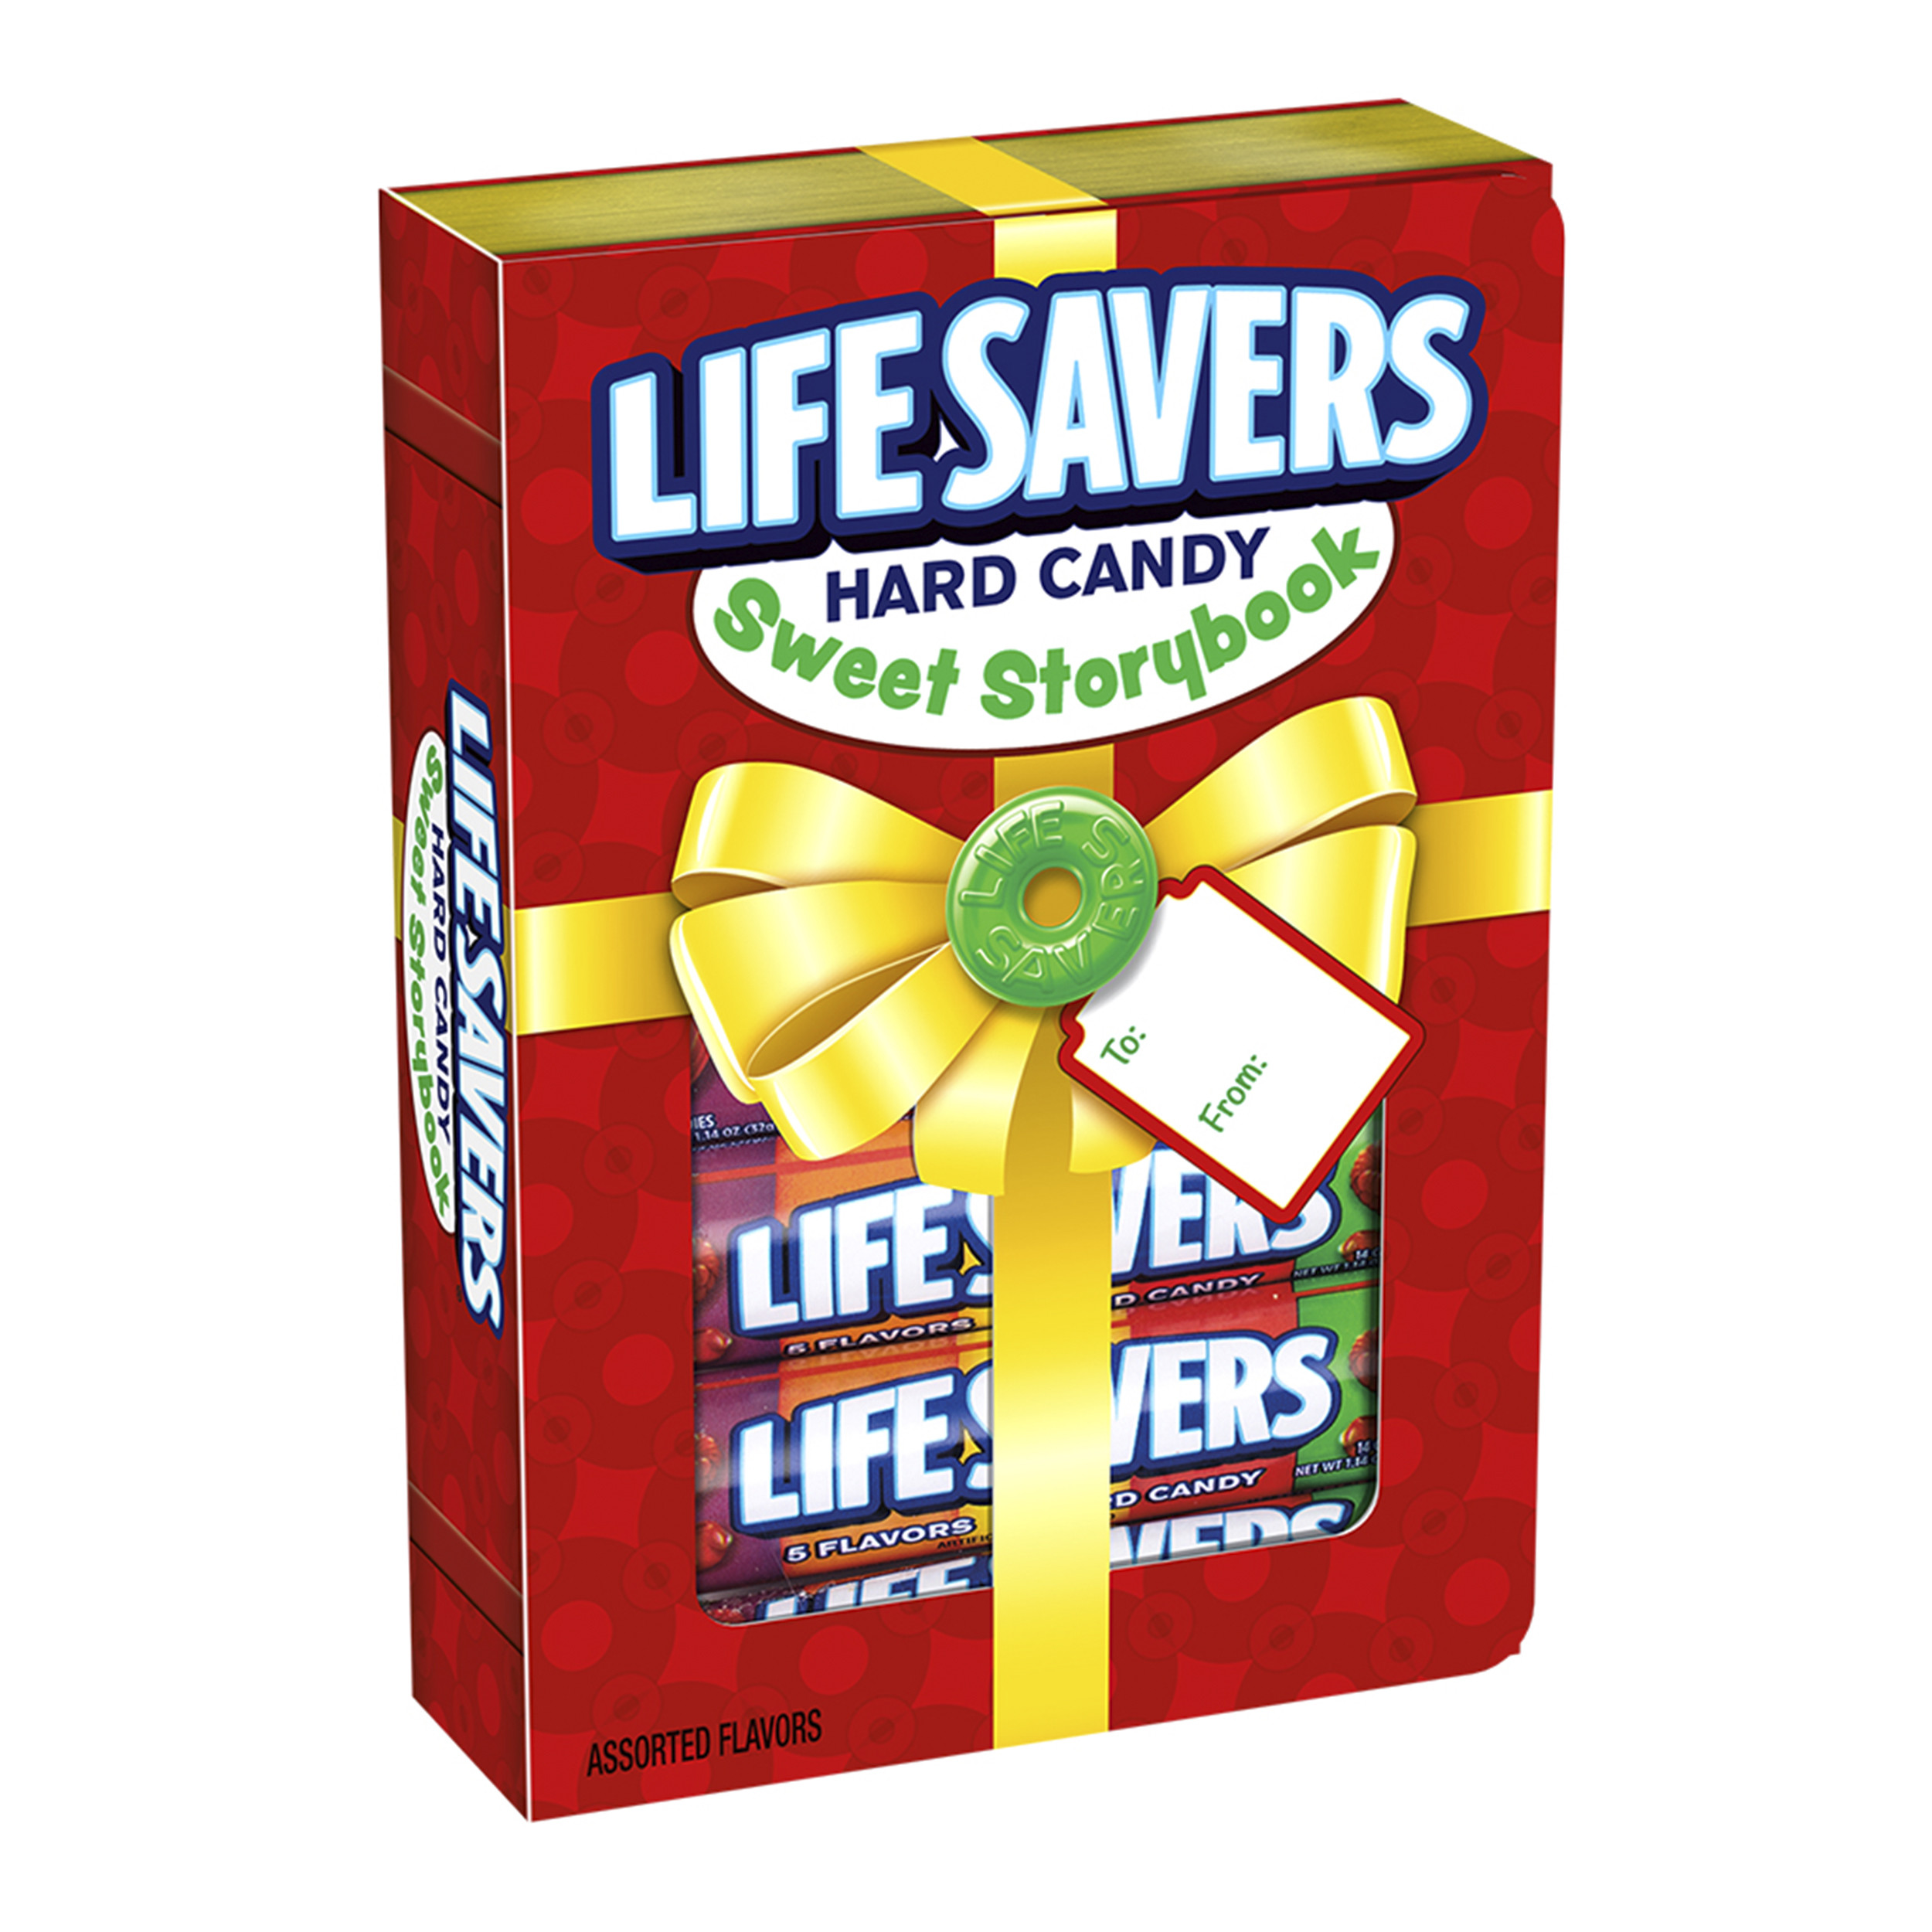 (3 Pack) Life Savers 5 Flavors Sweet Storybook Gift Box (6 Rolls of Candies)